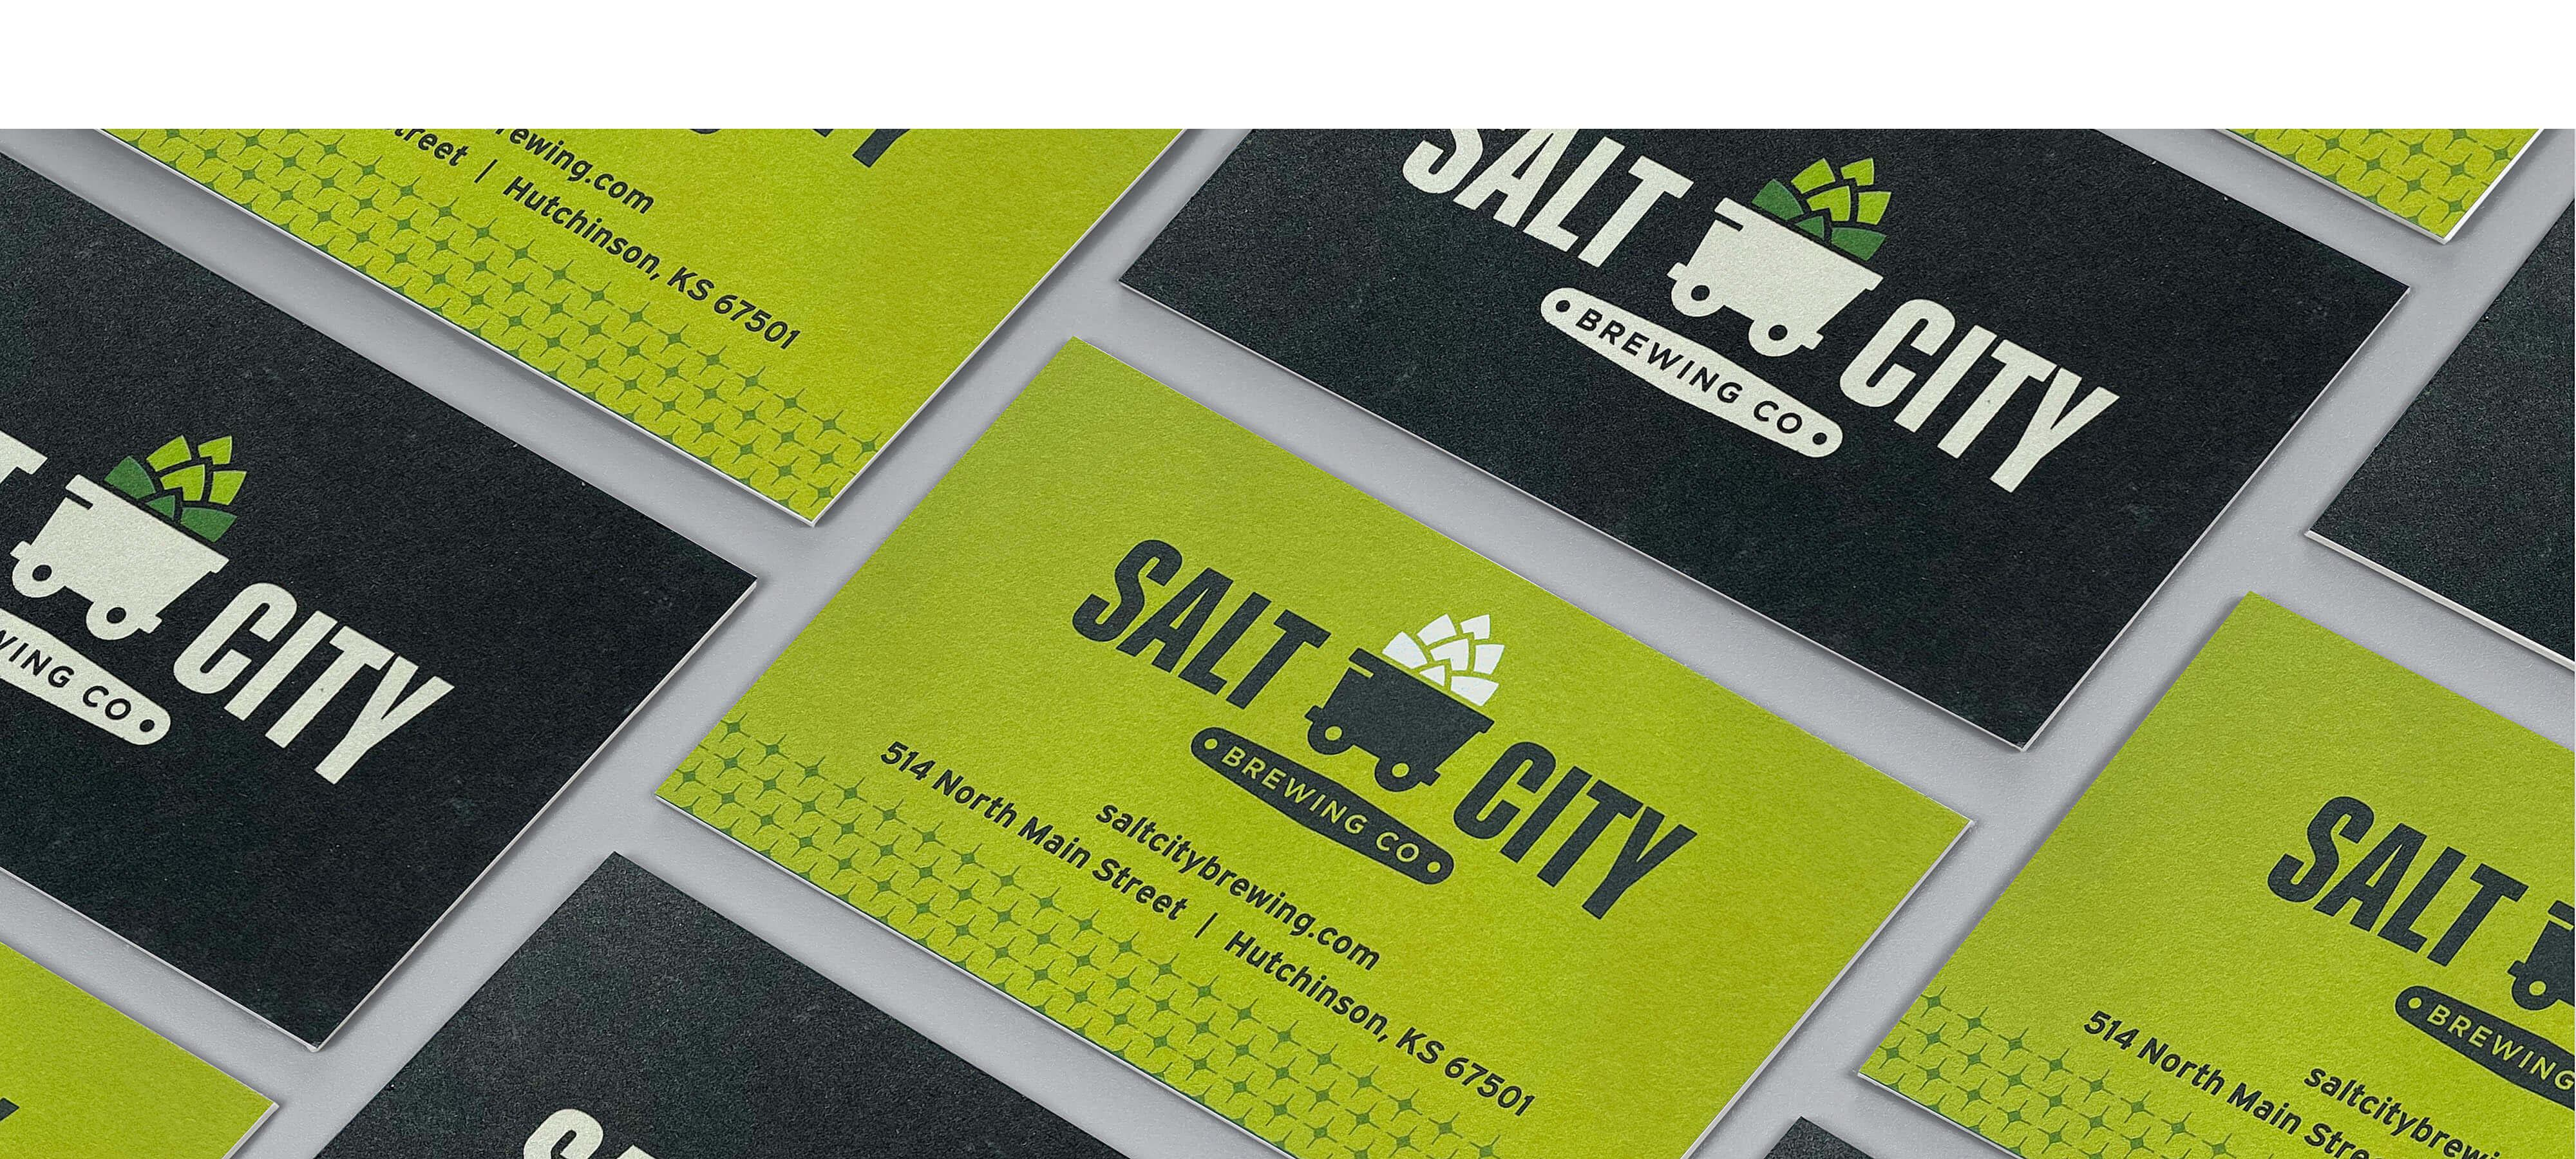 Salt City Brewing Co. Stationary